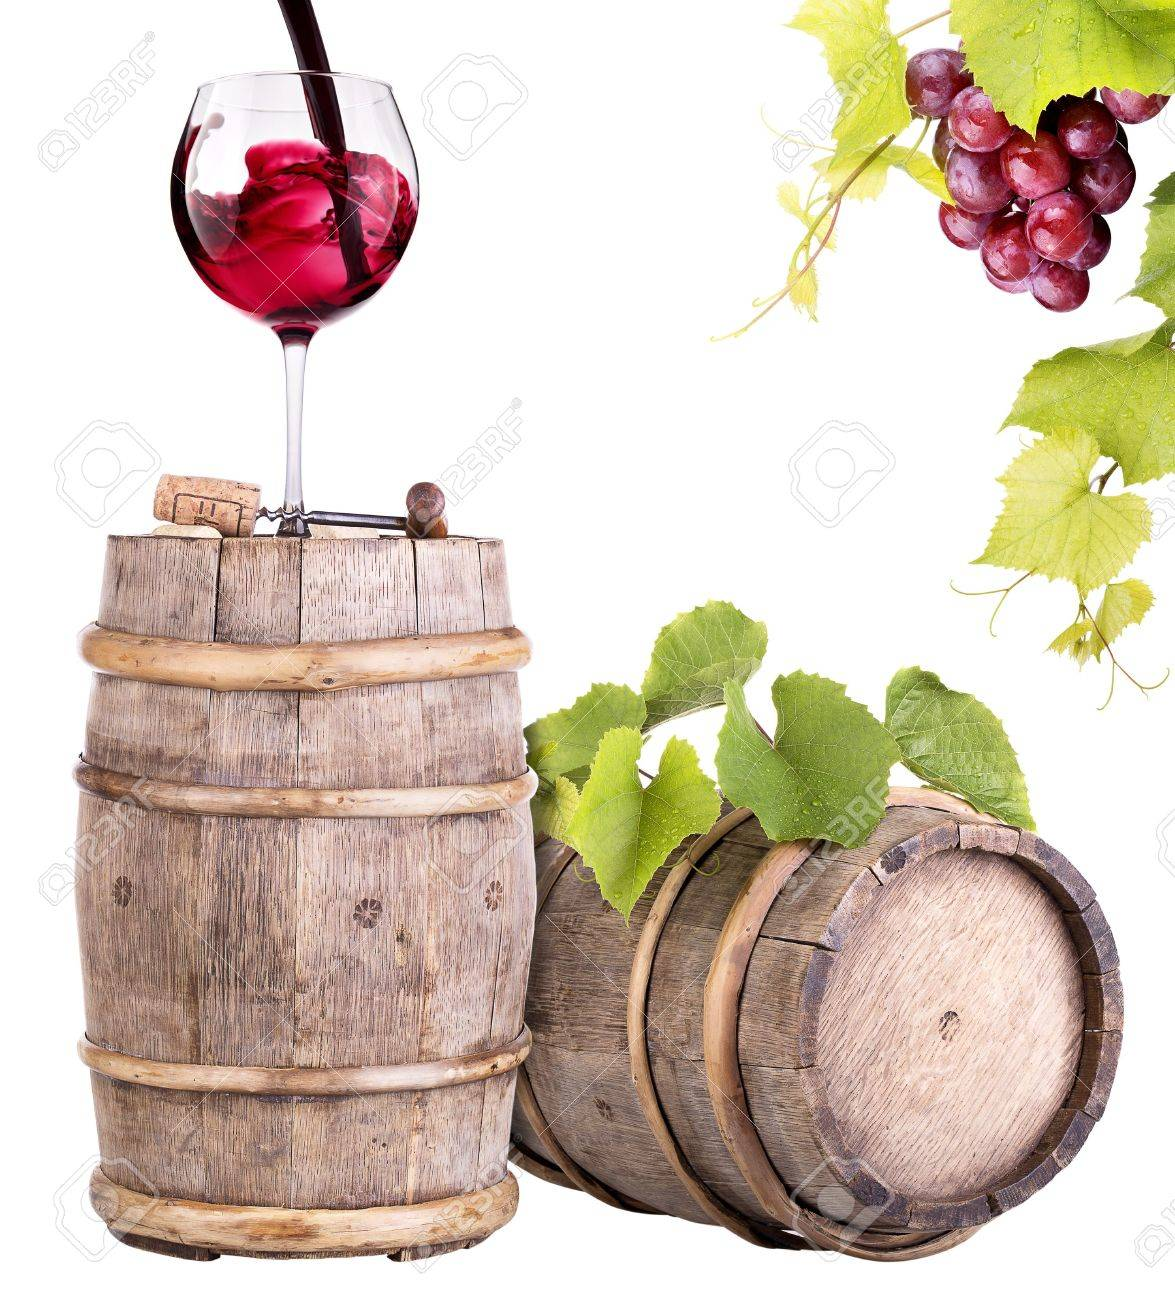 grapes with wine glass and wooden vintage barrel isolated on a white background Stock Photo - 20302987